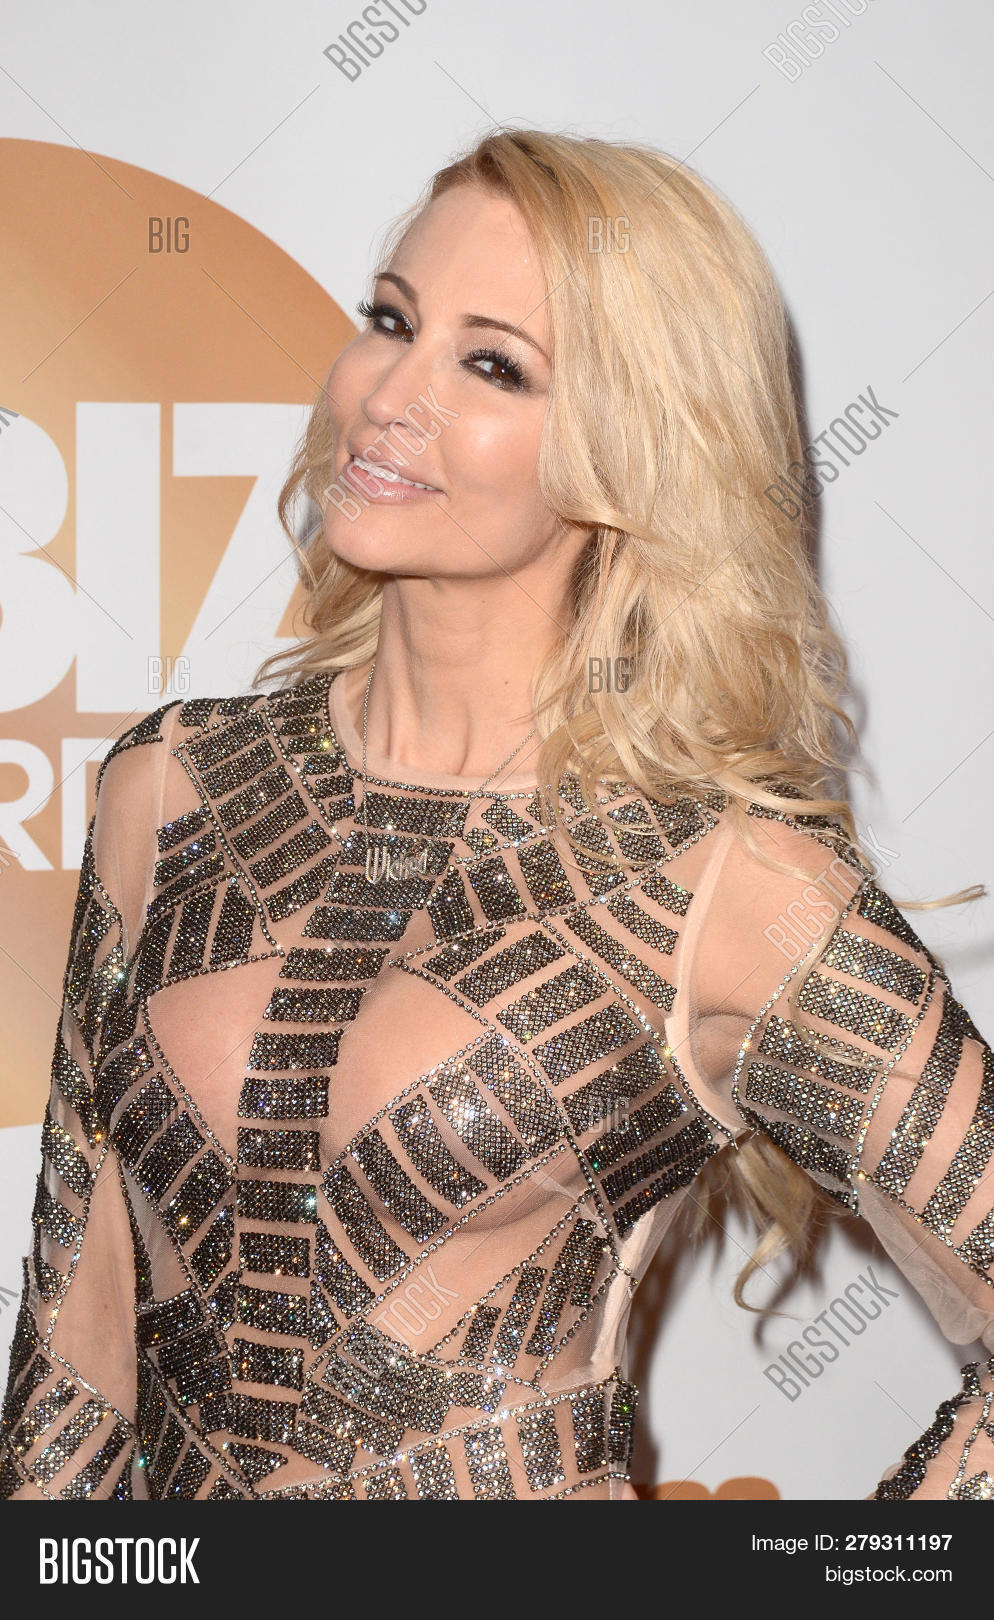 Los Angeles Jan 17 Jessica Drake At The 2019 Xbiz Awards At The Westin